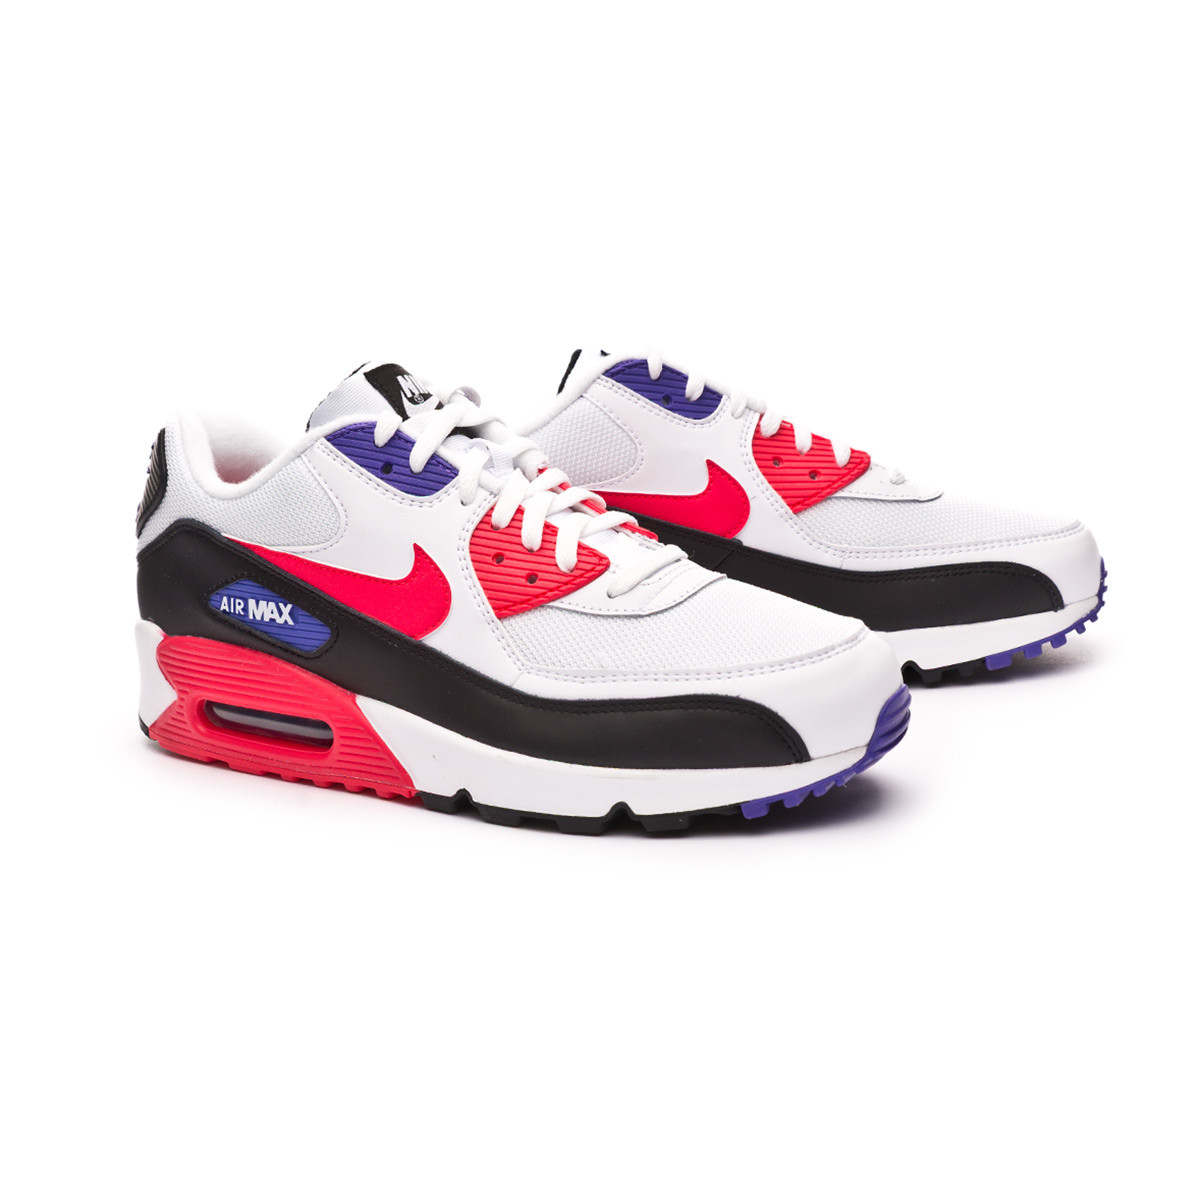 Nike Air Max '90 Essential Shoe Trainers